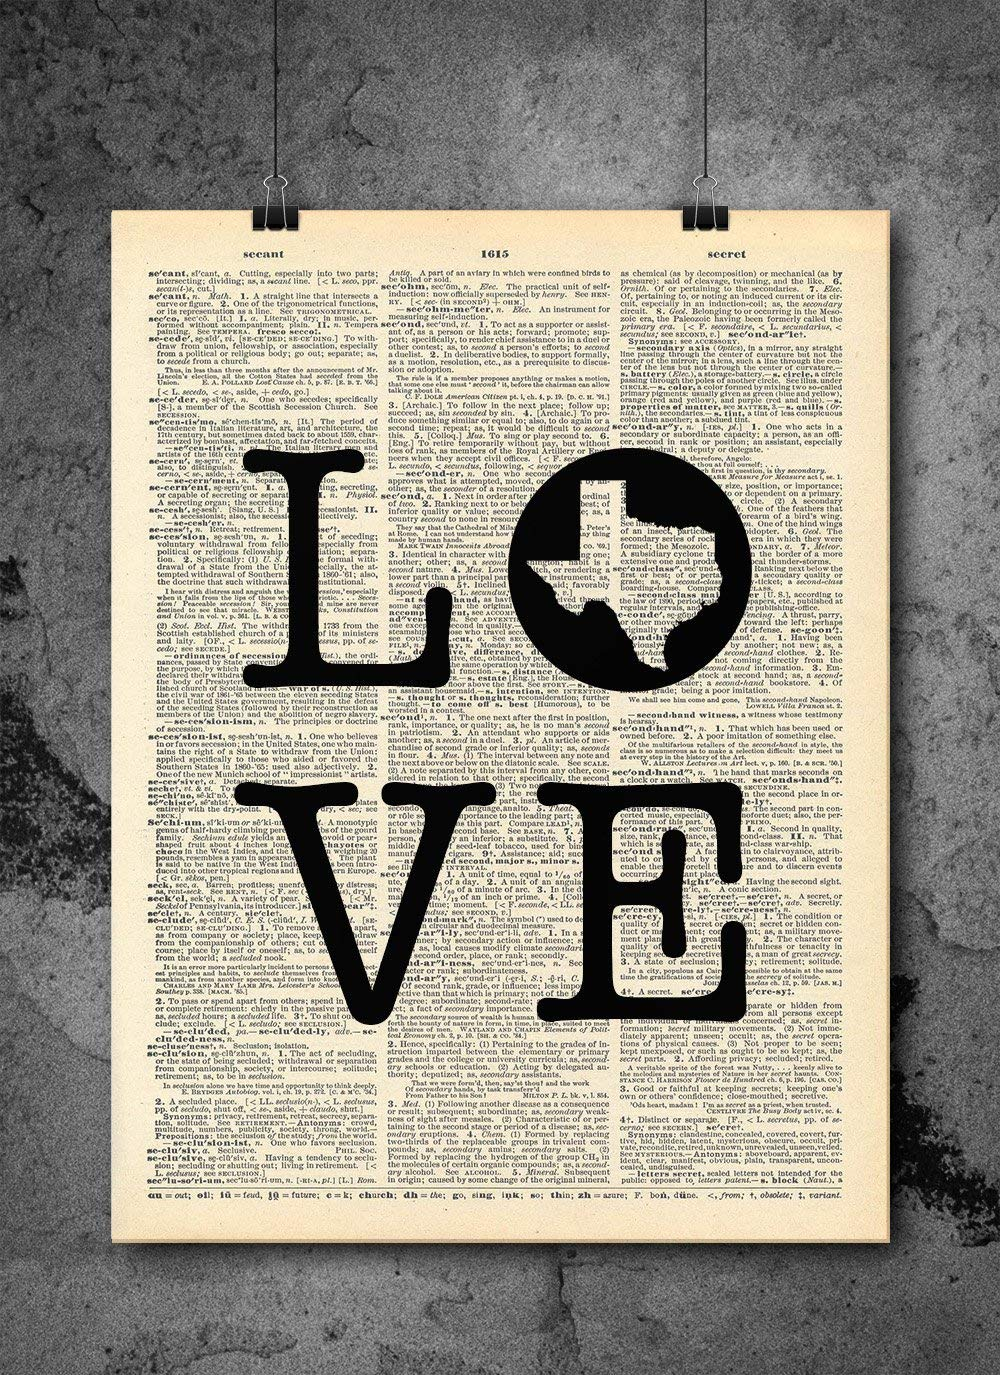 Texas Wall Art - Love Home - Dictionary Art Print - Vintage Dictionary Print 8x10 inch Home Vintage Art Wall Art for Home Wall For Living Room Bedroom Office Ready-to-Frame